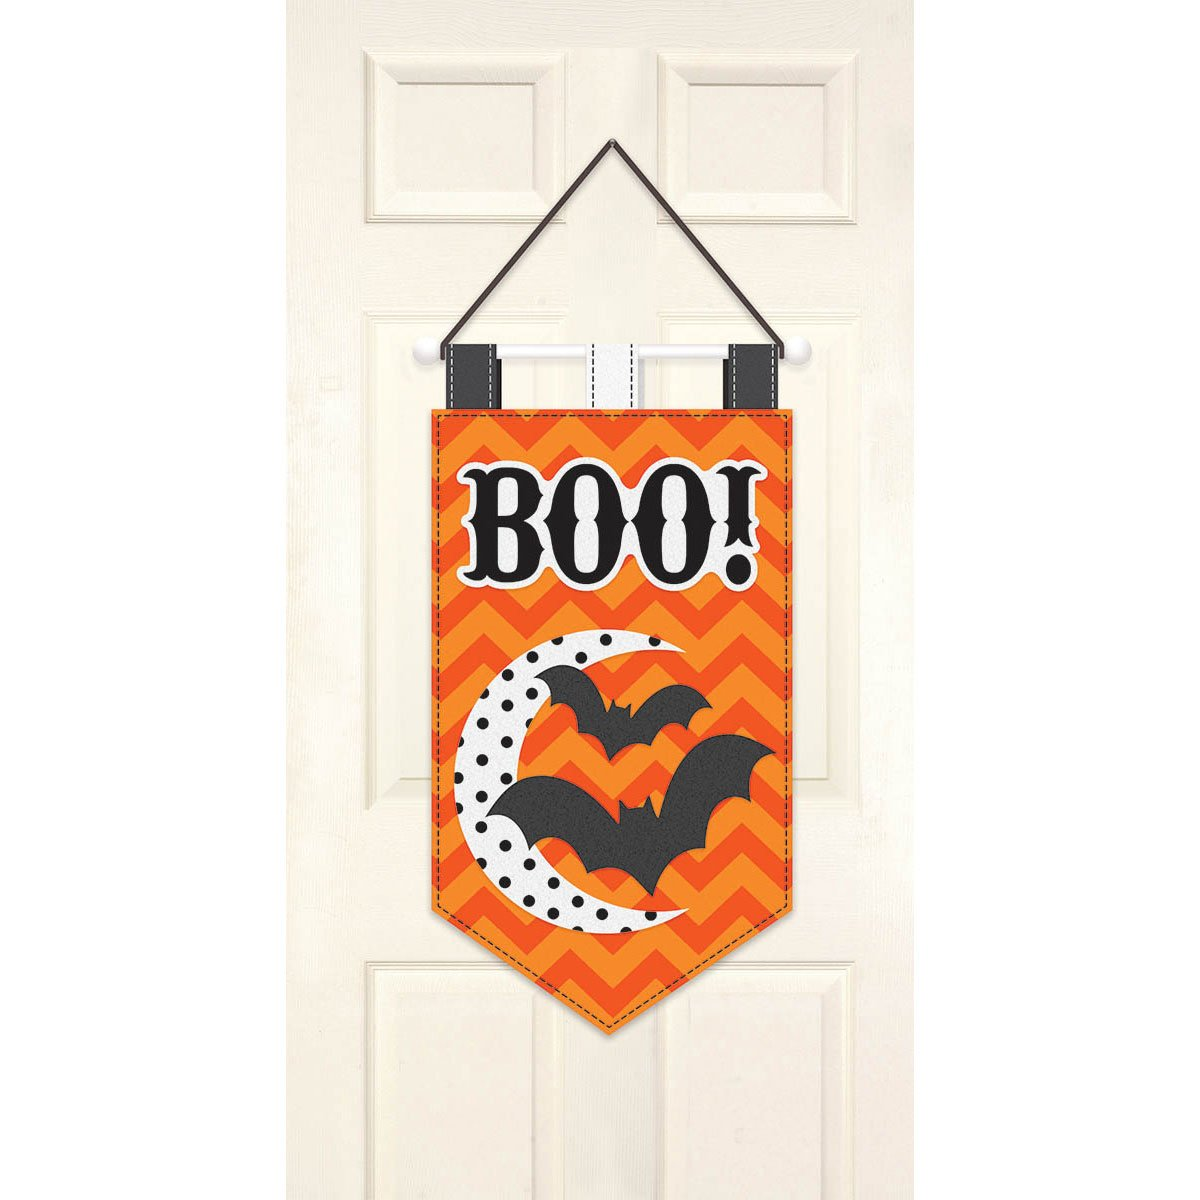 amscan New Age Scare Halloween Party Boo! Hanging Door Banner, Multicolor, 19 1/2''